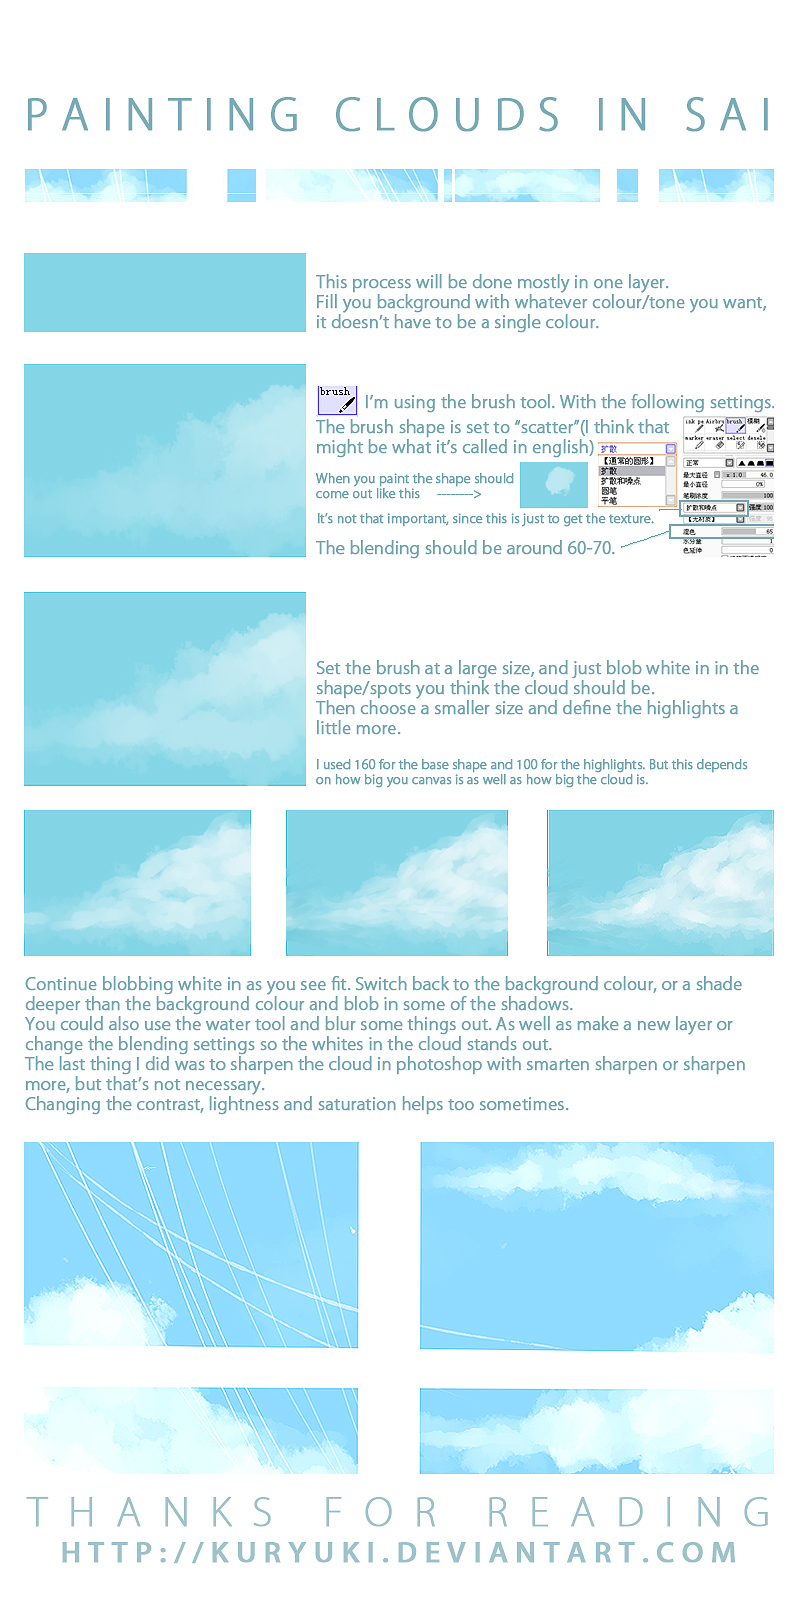 Cloud Painting Tutorial In SAI By Kuryuki On DeviantArt